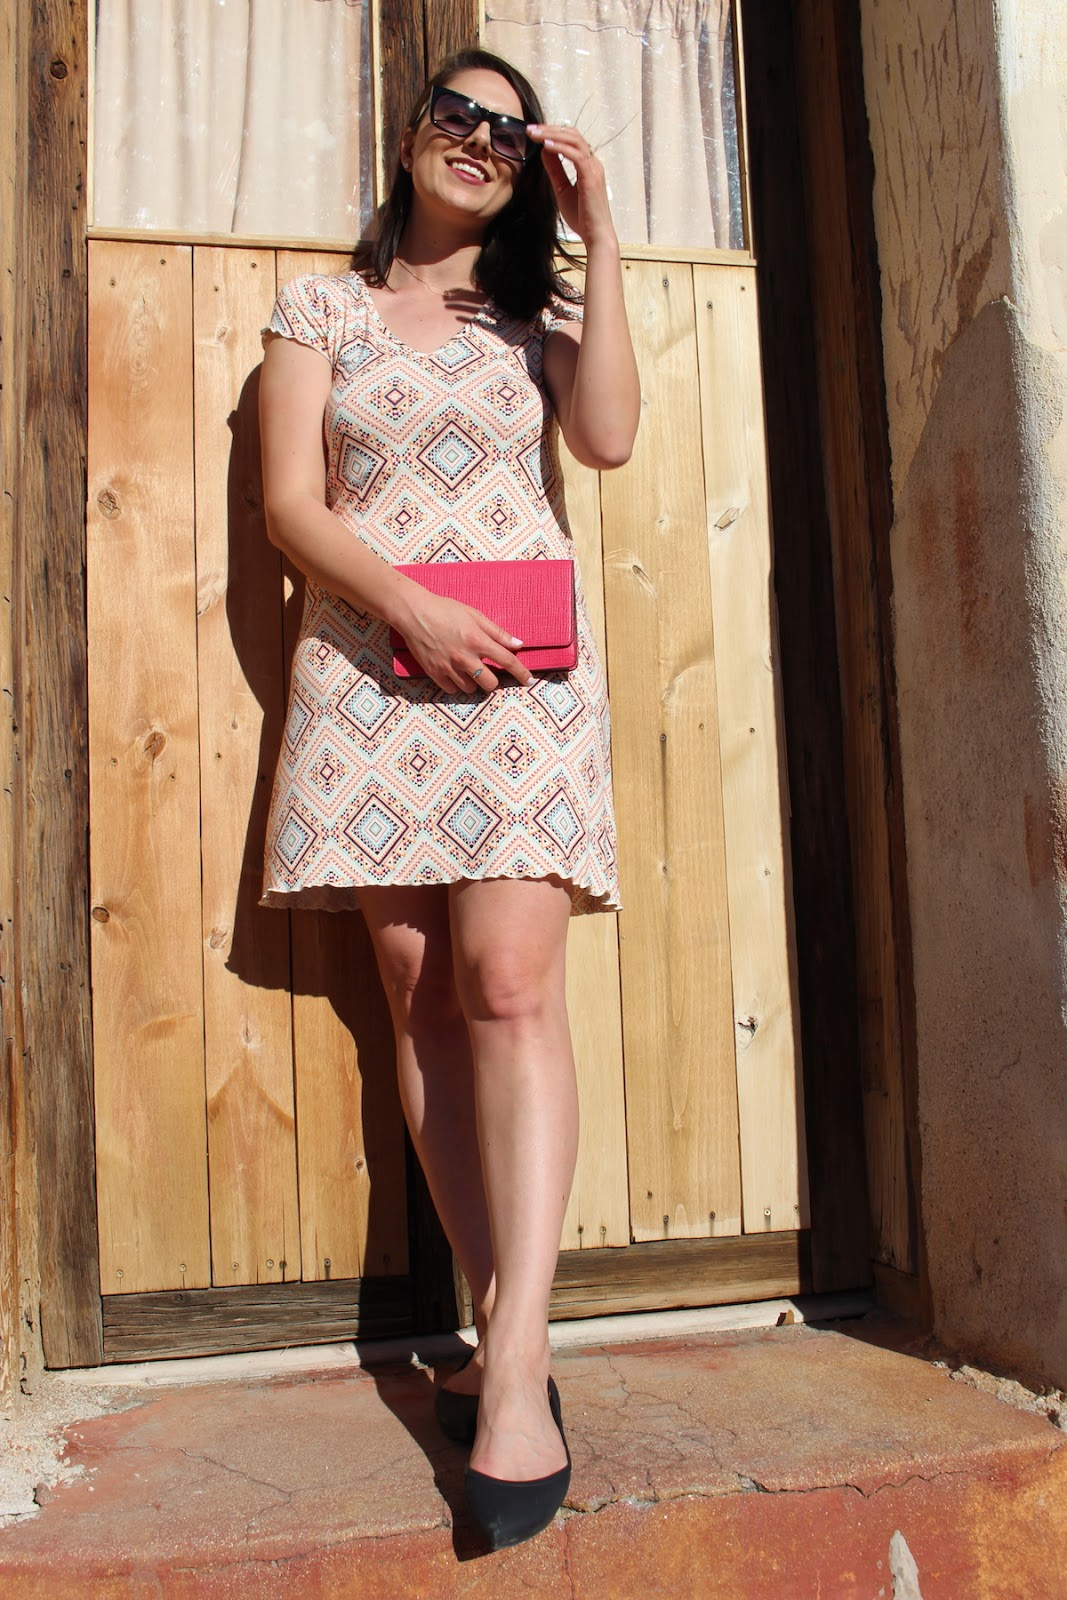 This is a close up of me wearing a geometric white dress with many colors, holding a Coach clutch.